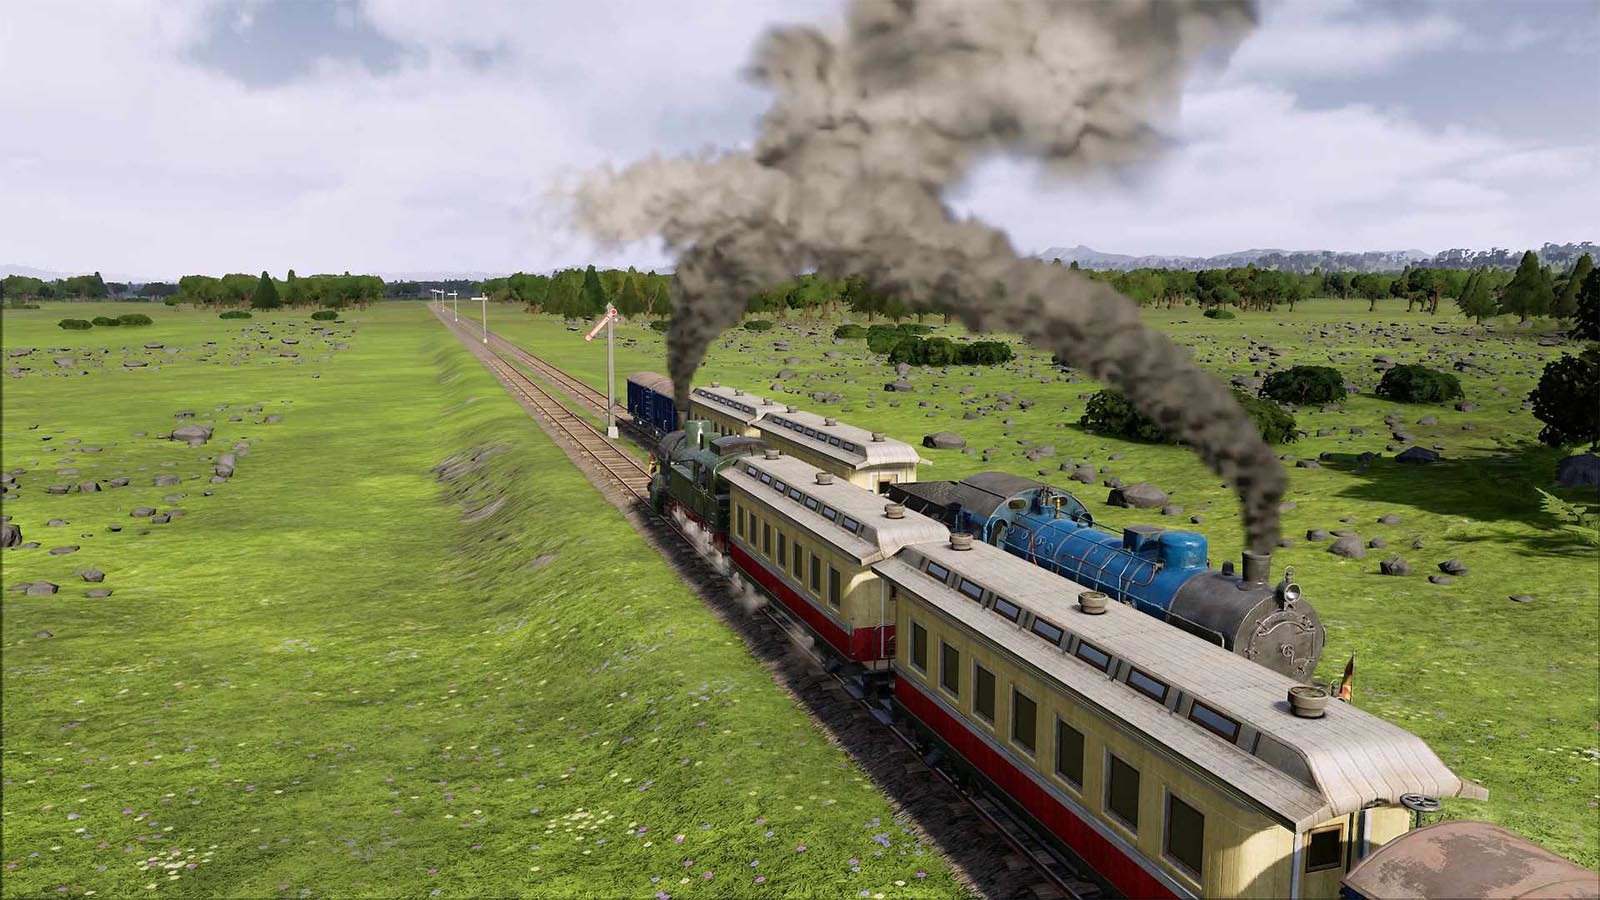 Railway Empire: Germany [Steam CD Key] for PC and Linux - Buy now